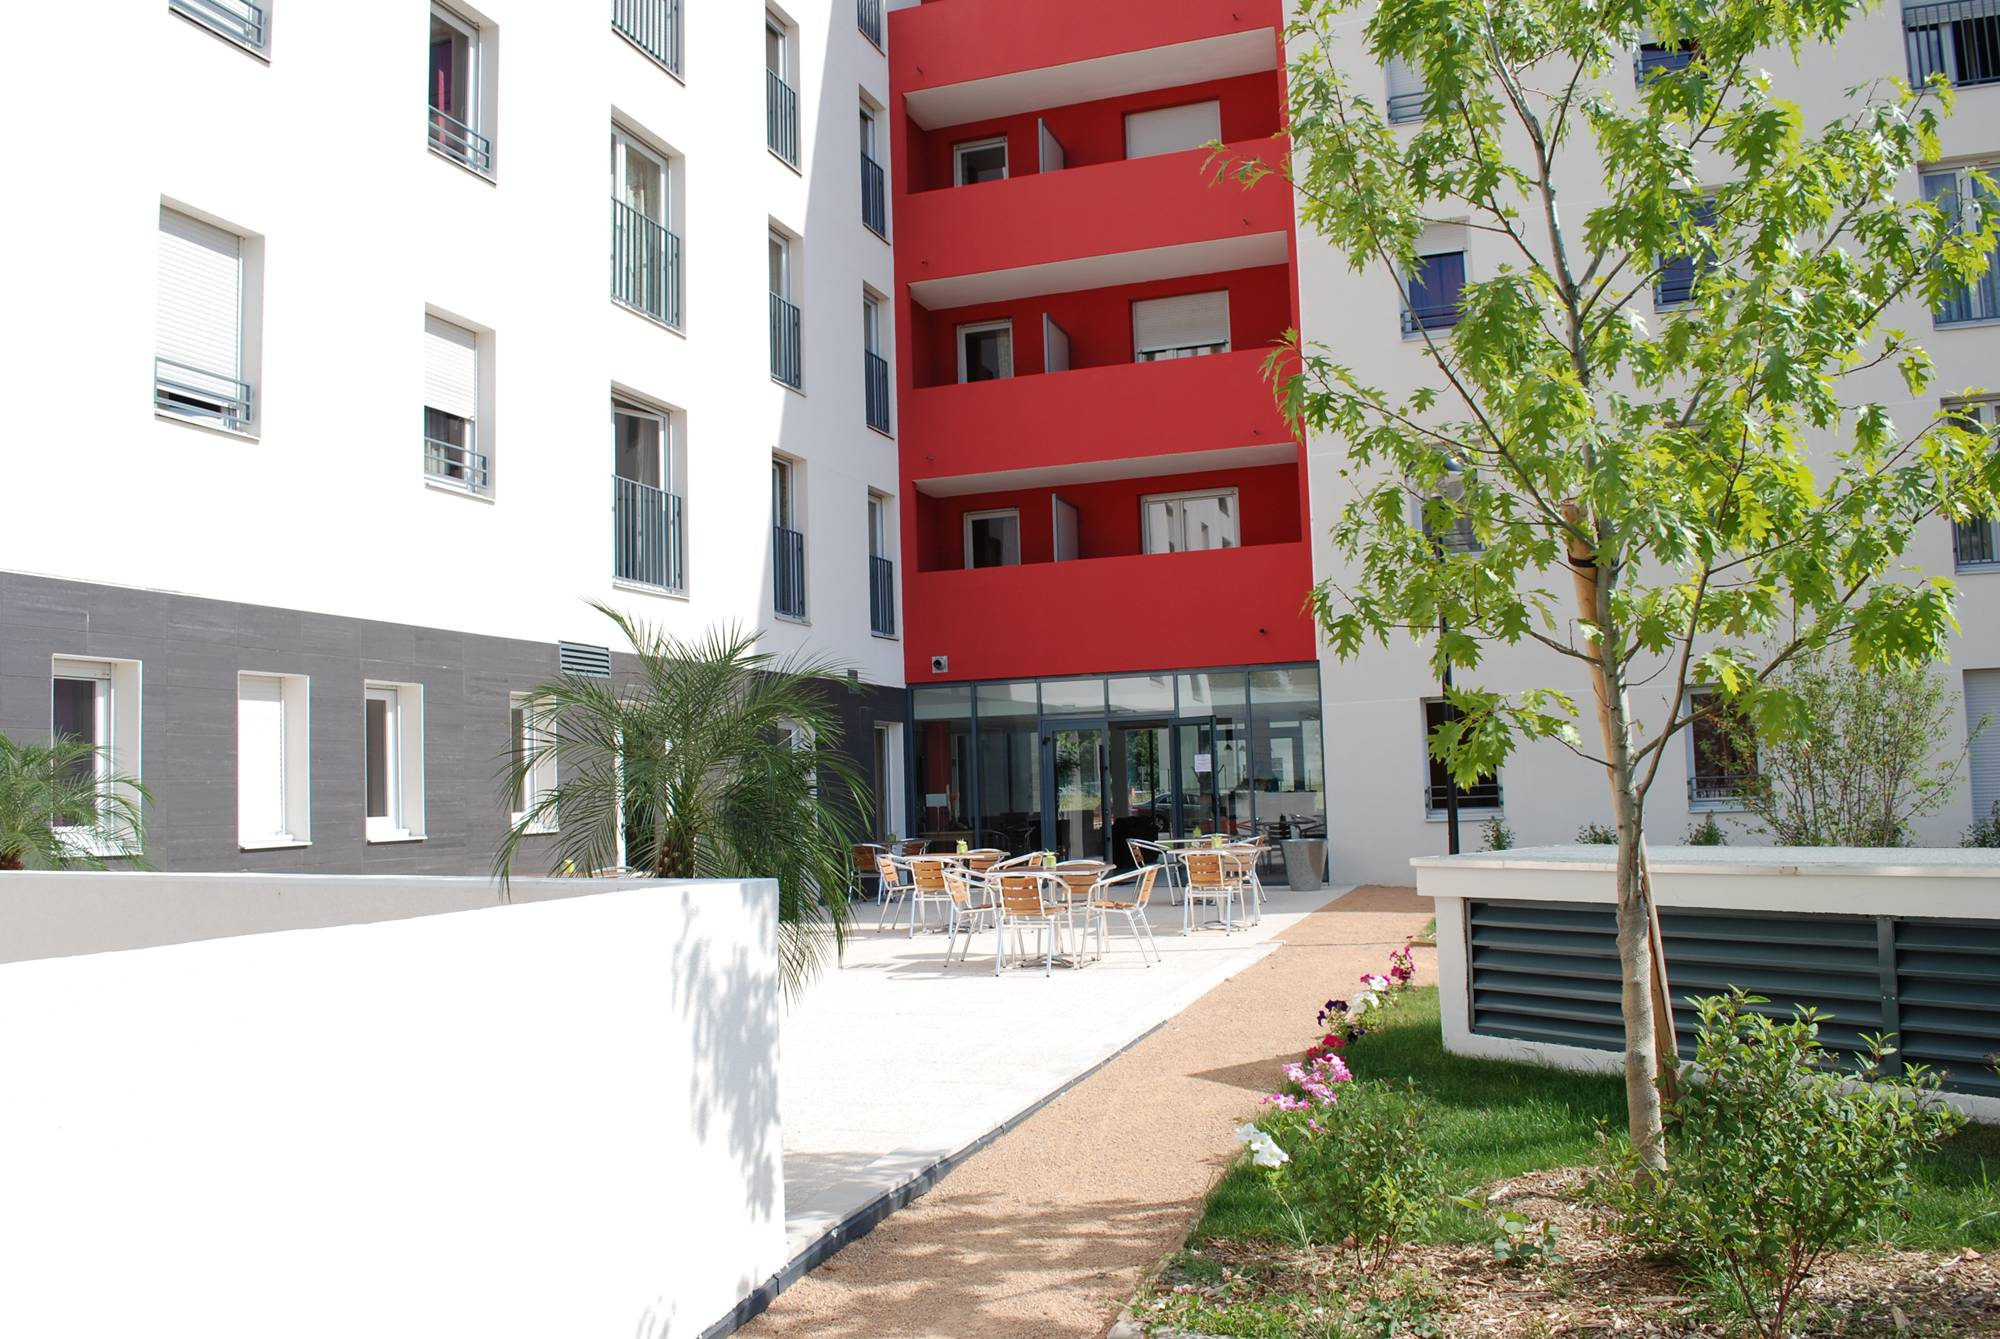 Hotel appart hotel odalys bioparc lyon viajes olympia for Appart hotel a madrid